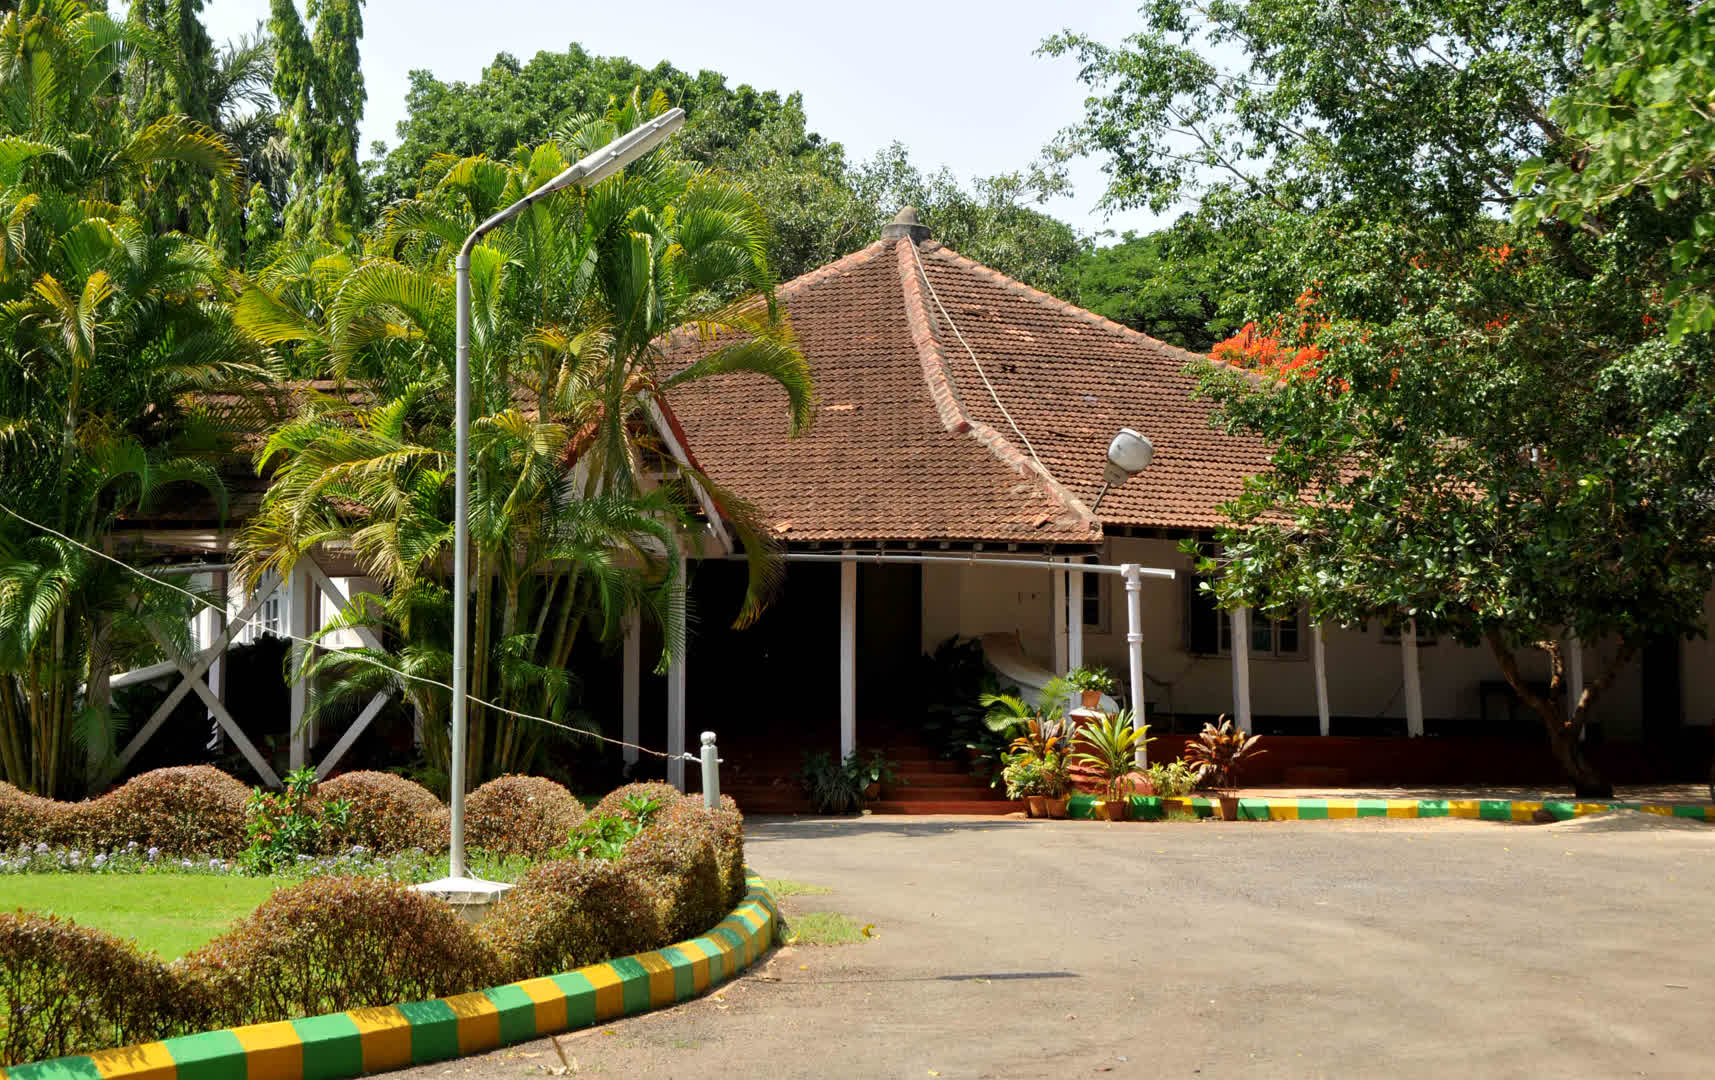 Rani Chennamma and the Mystery of the Queen's Room in Dharwad